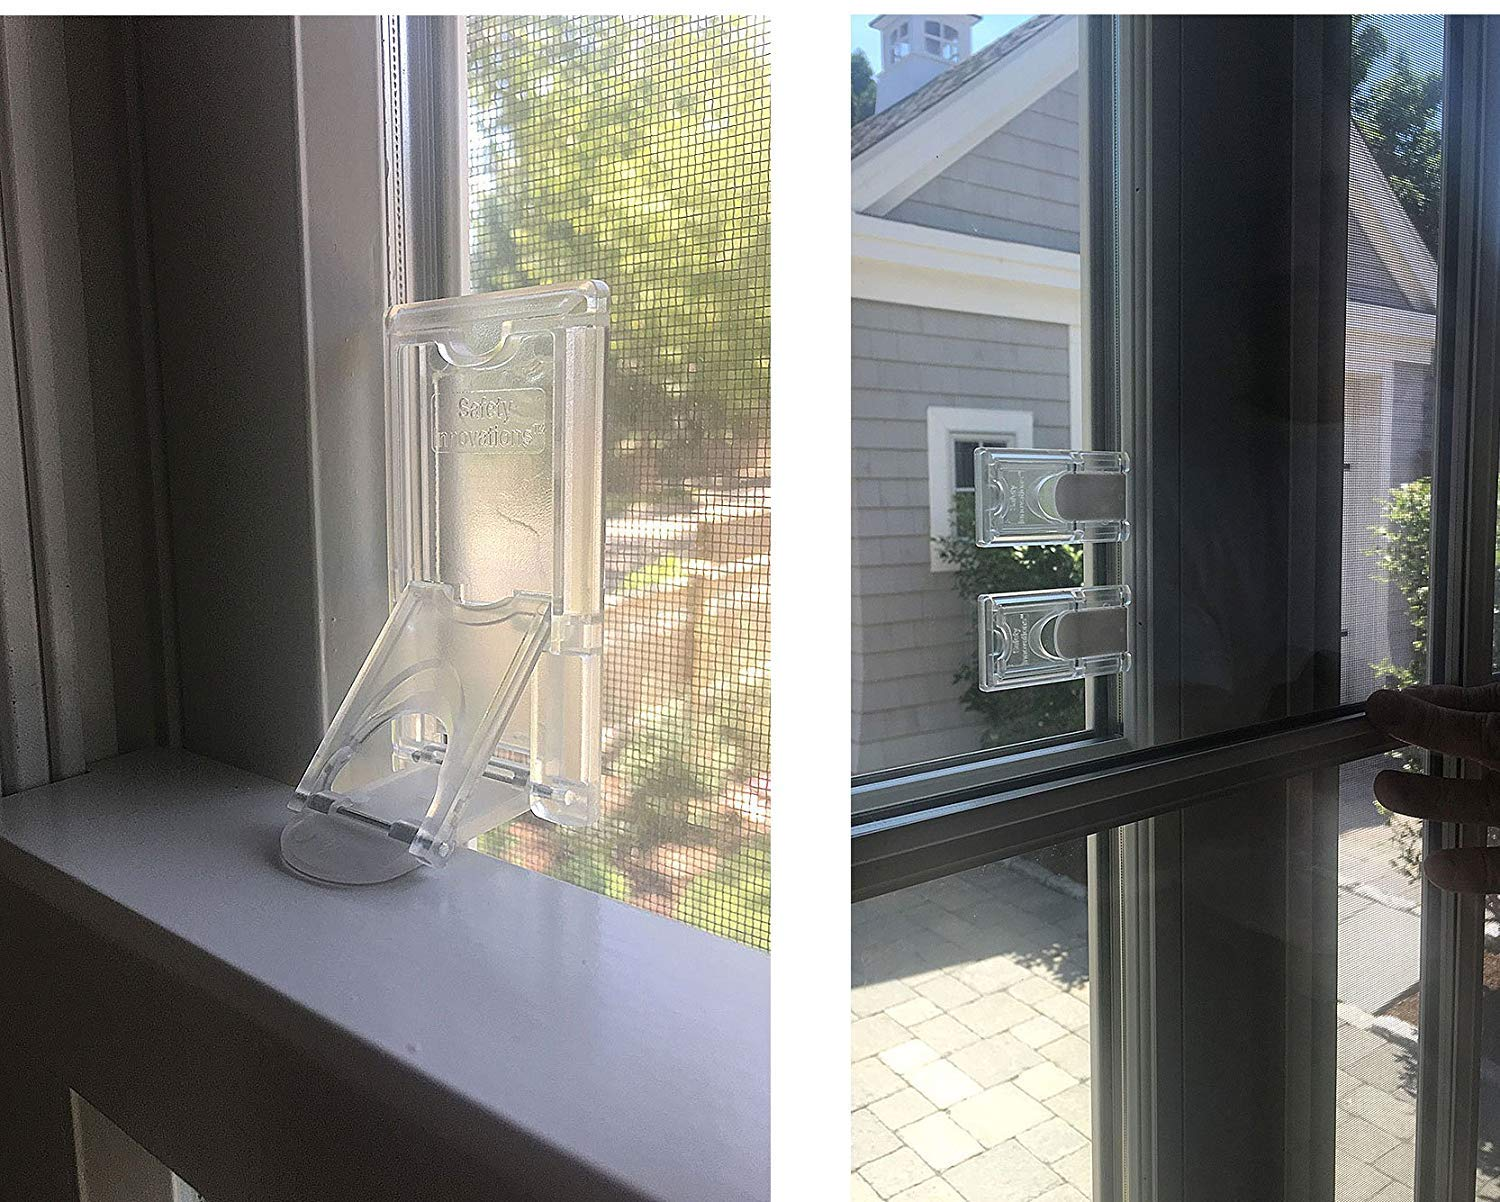 8-Pack-Childproof Your Windows and Sliding Doors with Our Window and Door Babyproof Safety Lock by Safety Innovations ...